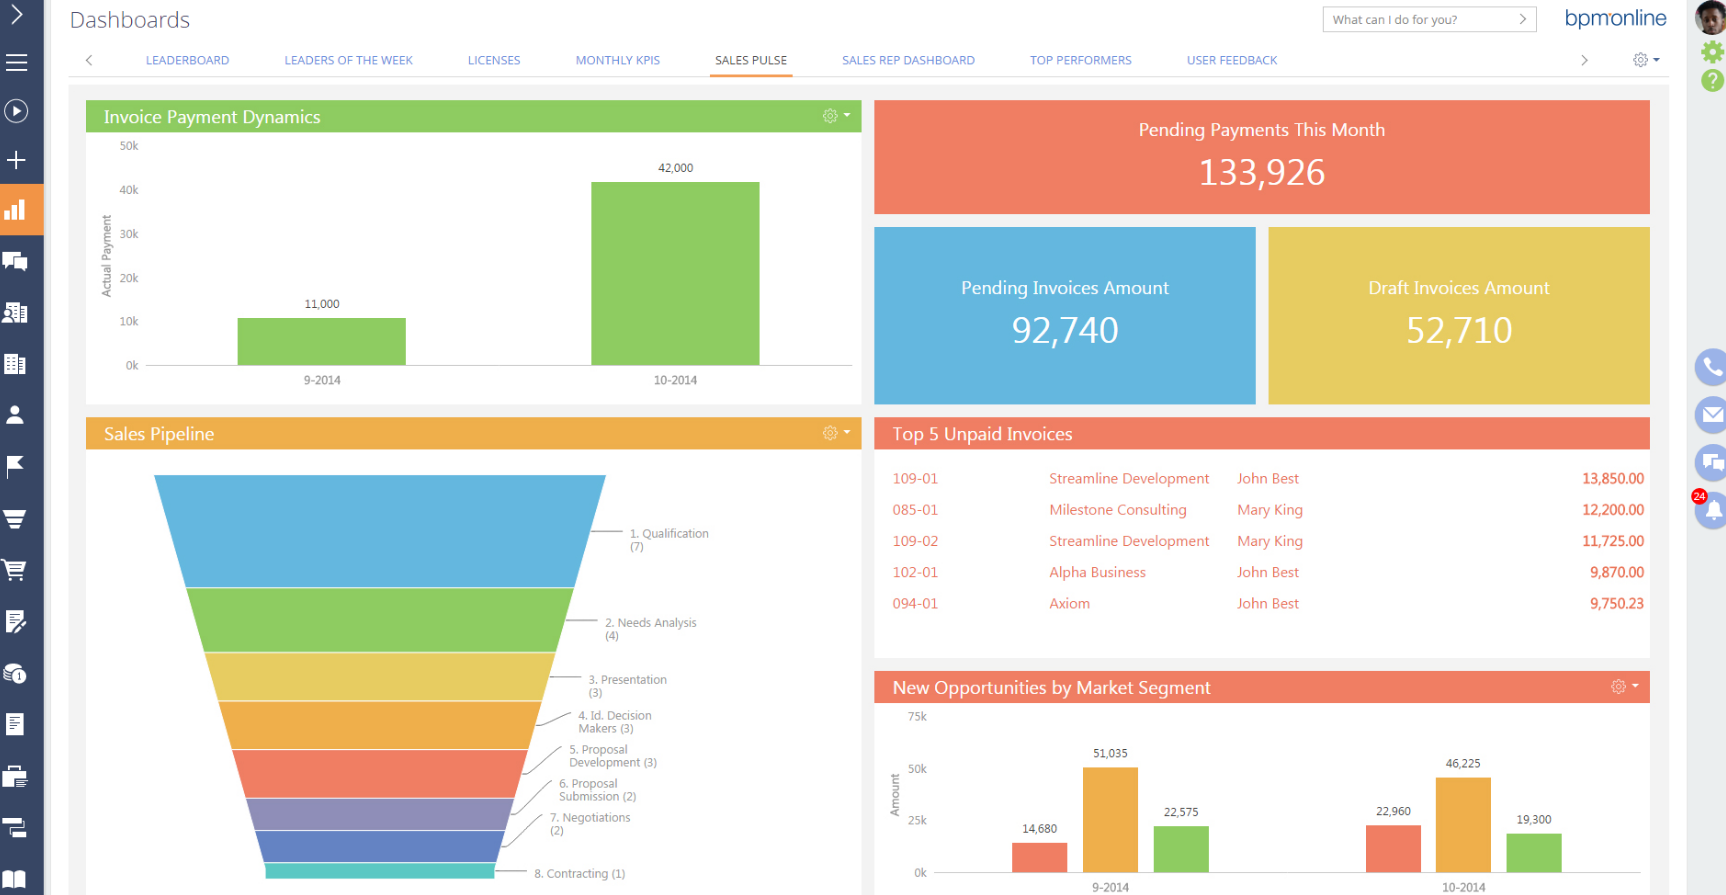 Praxi Solutions Oppt. Dashboard